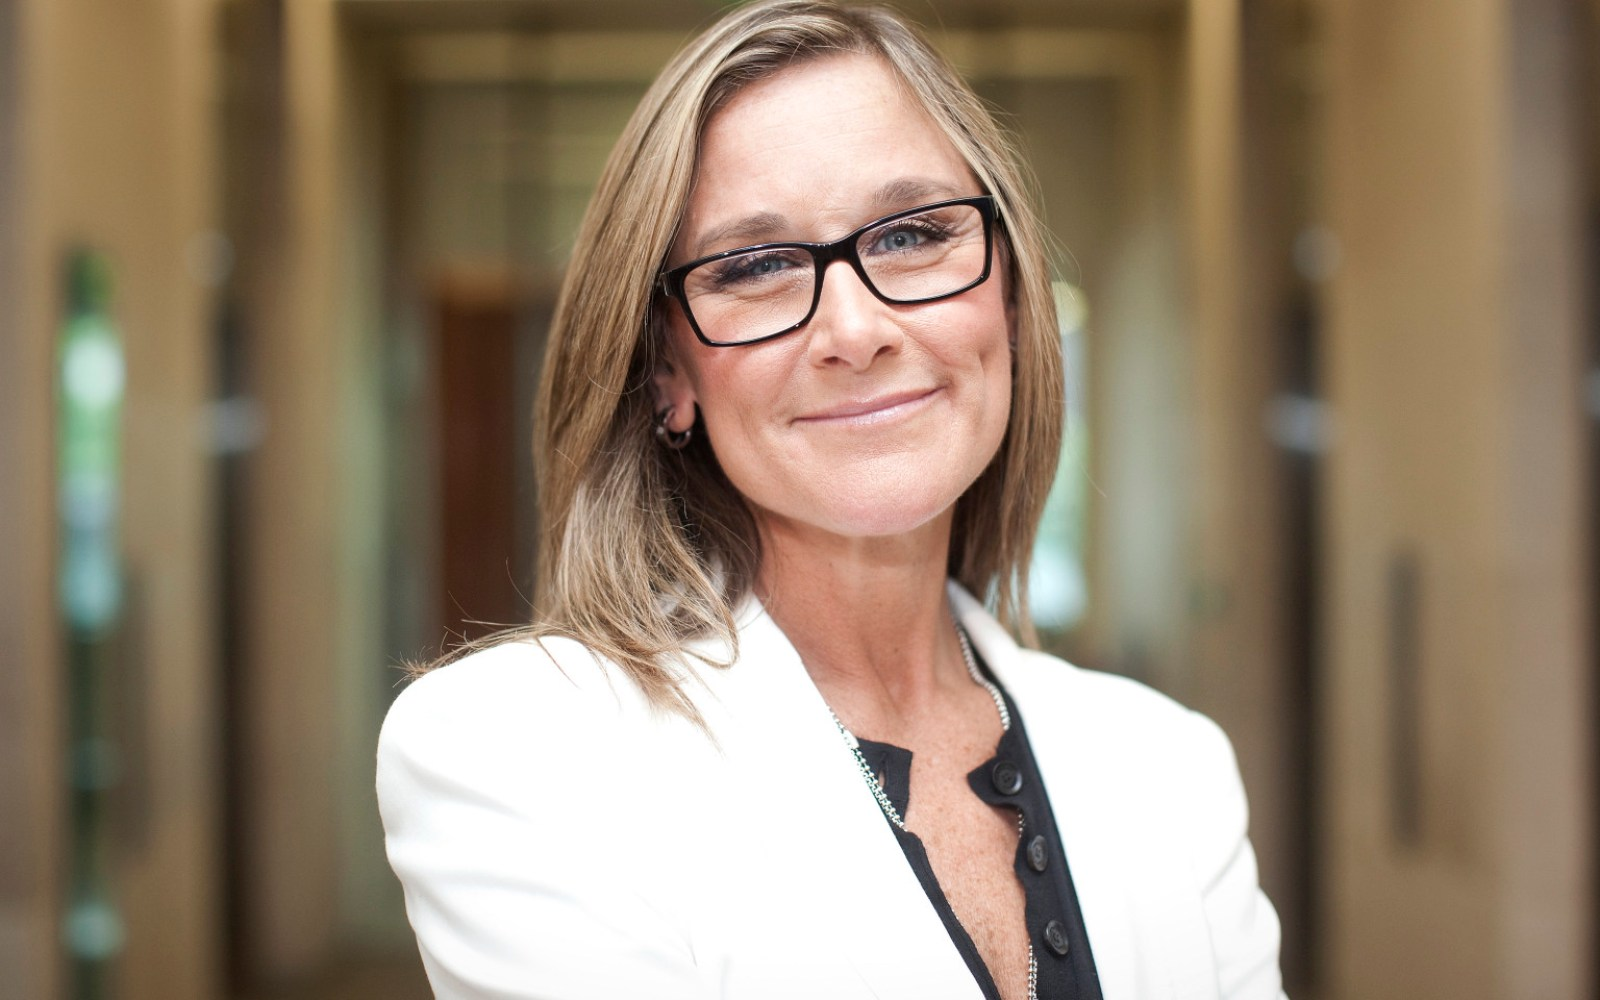 Apple SVP Angela Ahrendts becomes 'Dame of the British Empire' today, leaves Burberry as early as this month